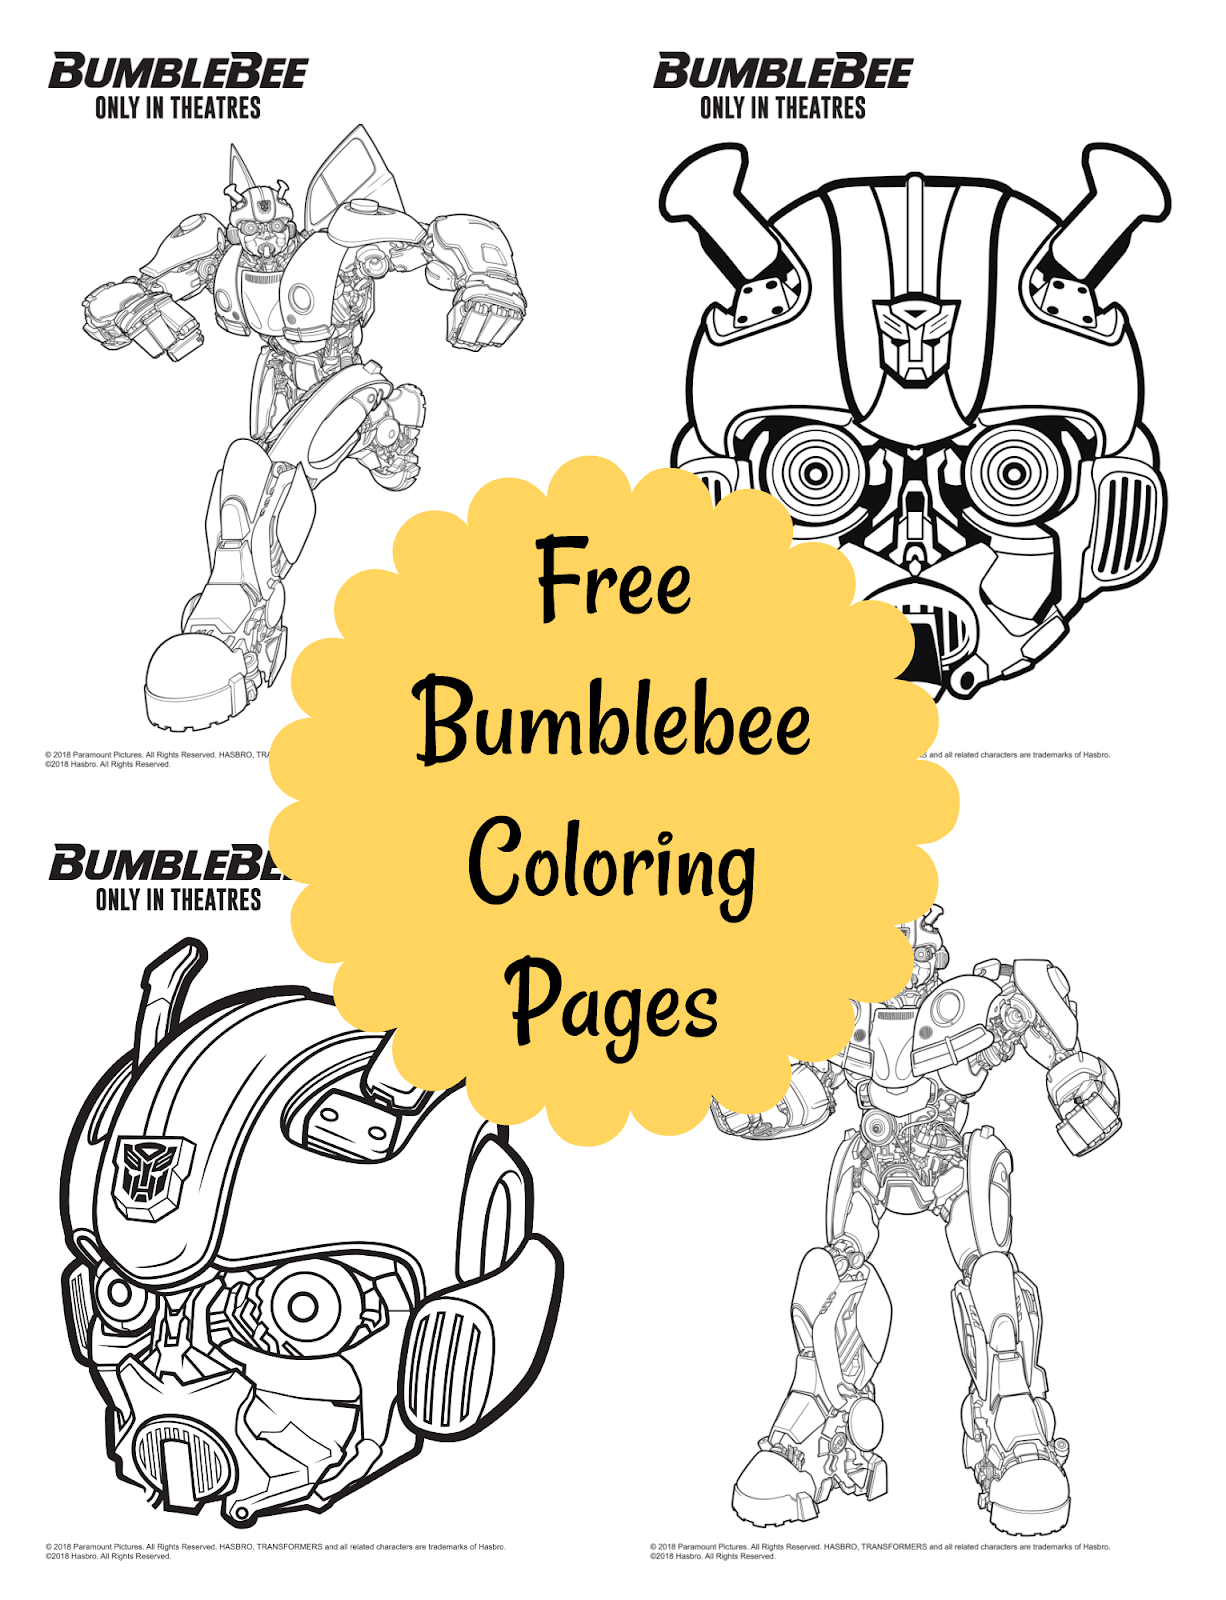 Entenmann S Brings An Unbeelieveable Sweepstakes Free Printables Giveaway Transformers Coloring Pages Bee Coloring Pages Coloring Pages